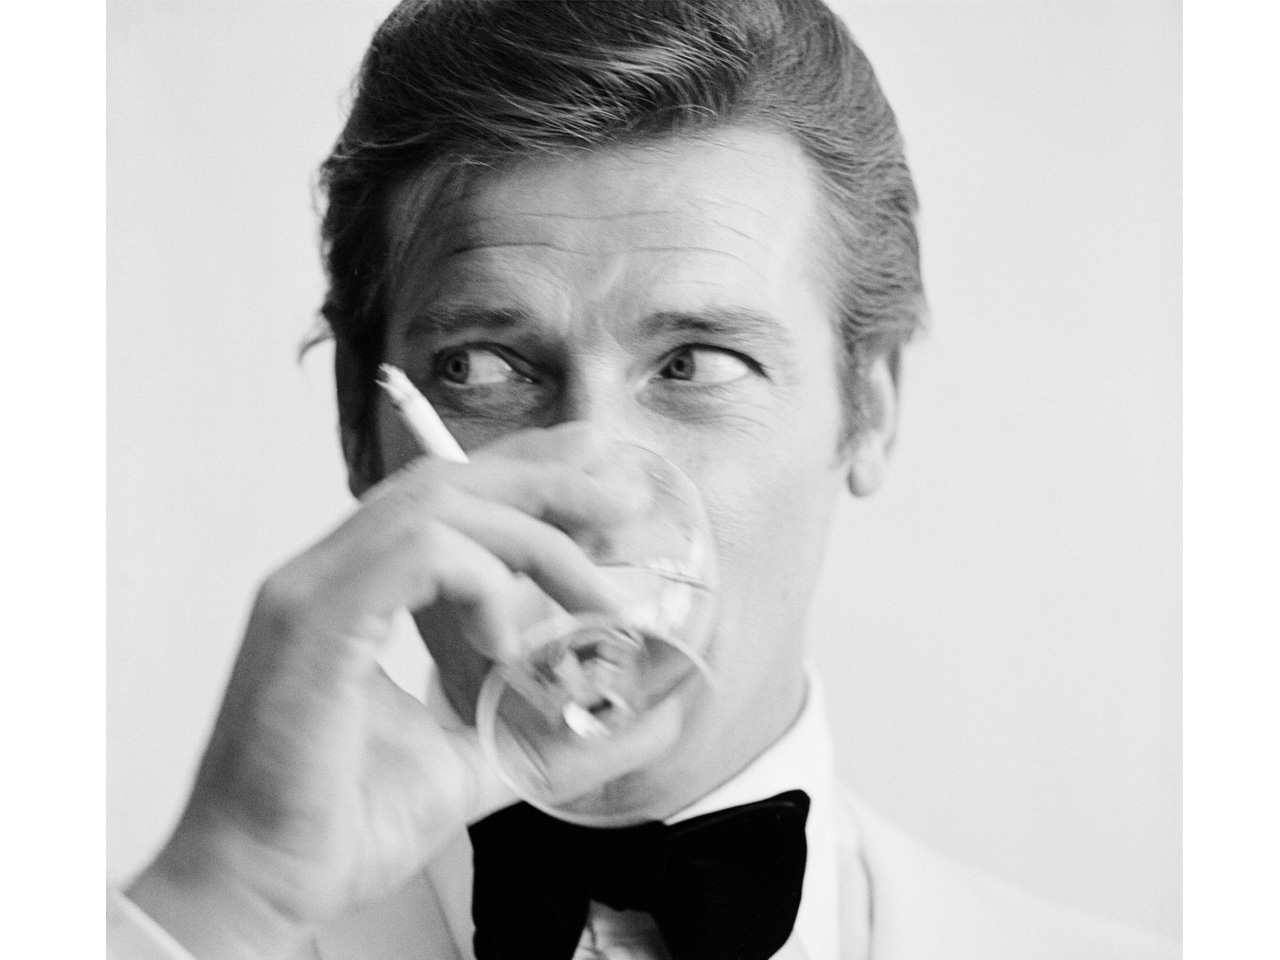 James Bond Drinking Martini